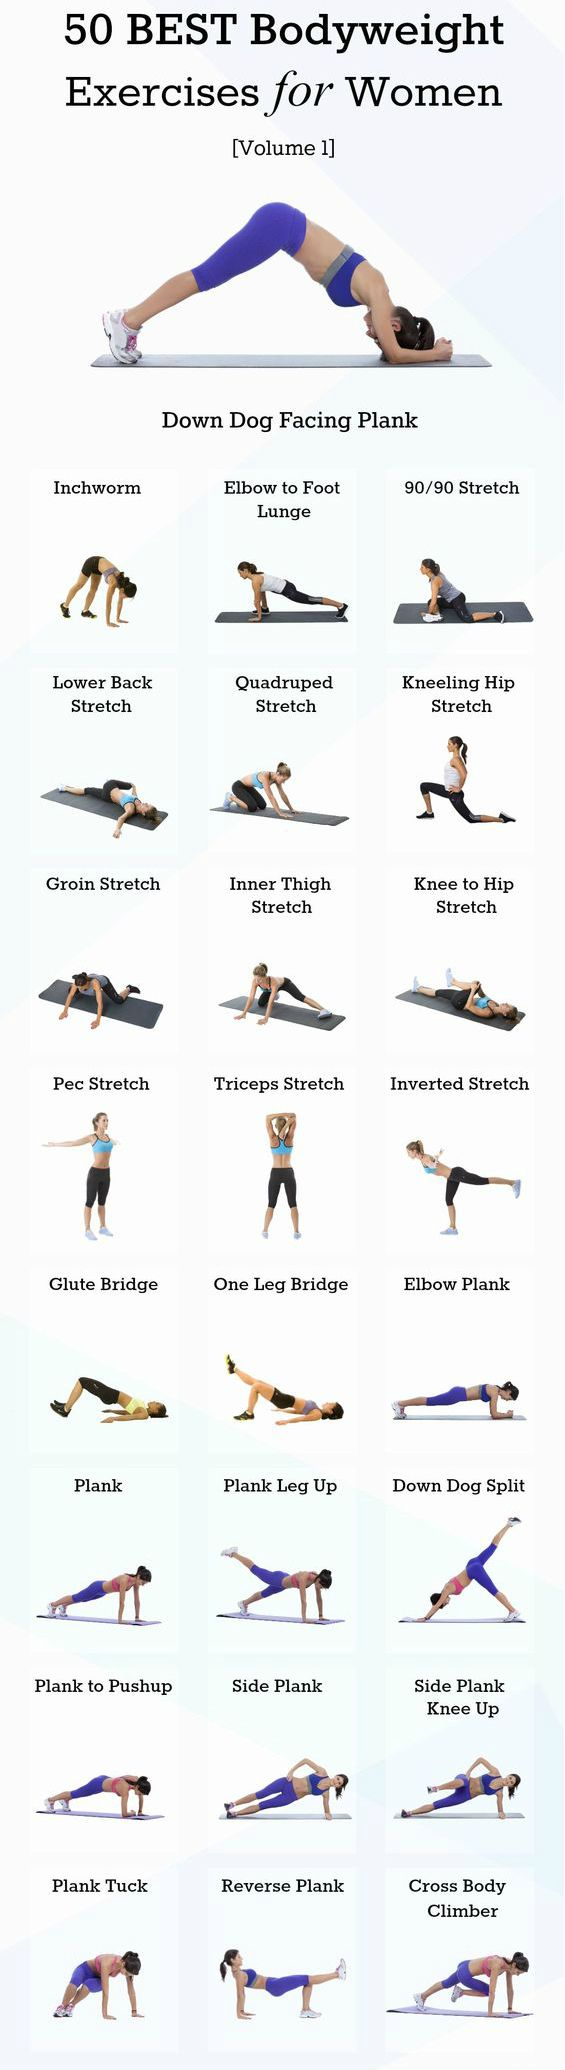 Try a full body workout that combines upper body exercises, lower body exercises, and core exercises into one workout routine for woman! #workoutforwoman #totalbodyworkout #weightlossworkout